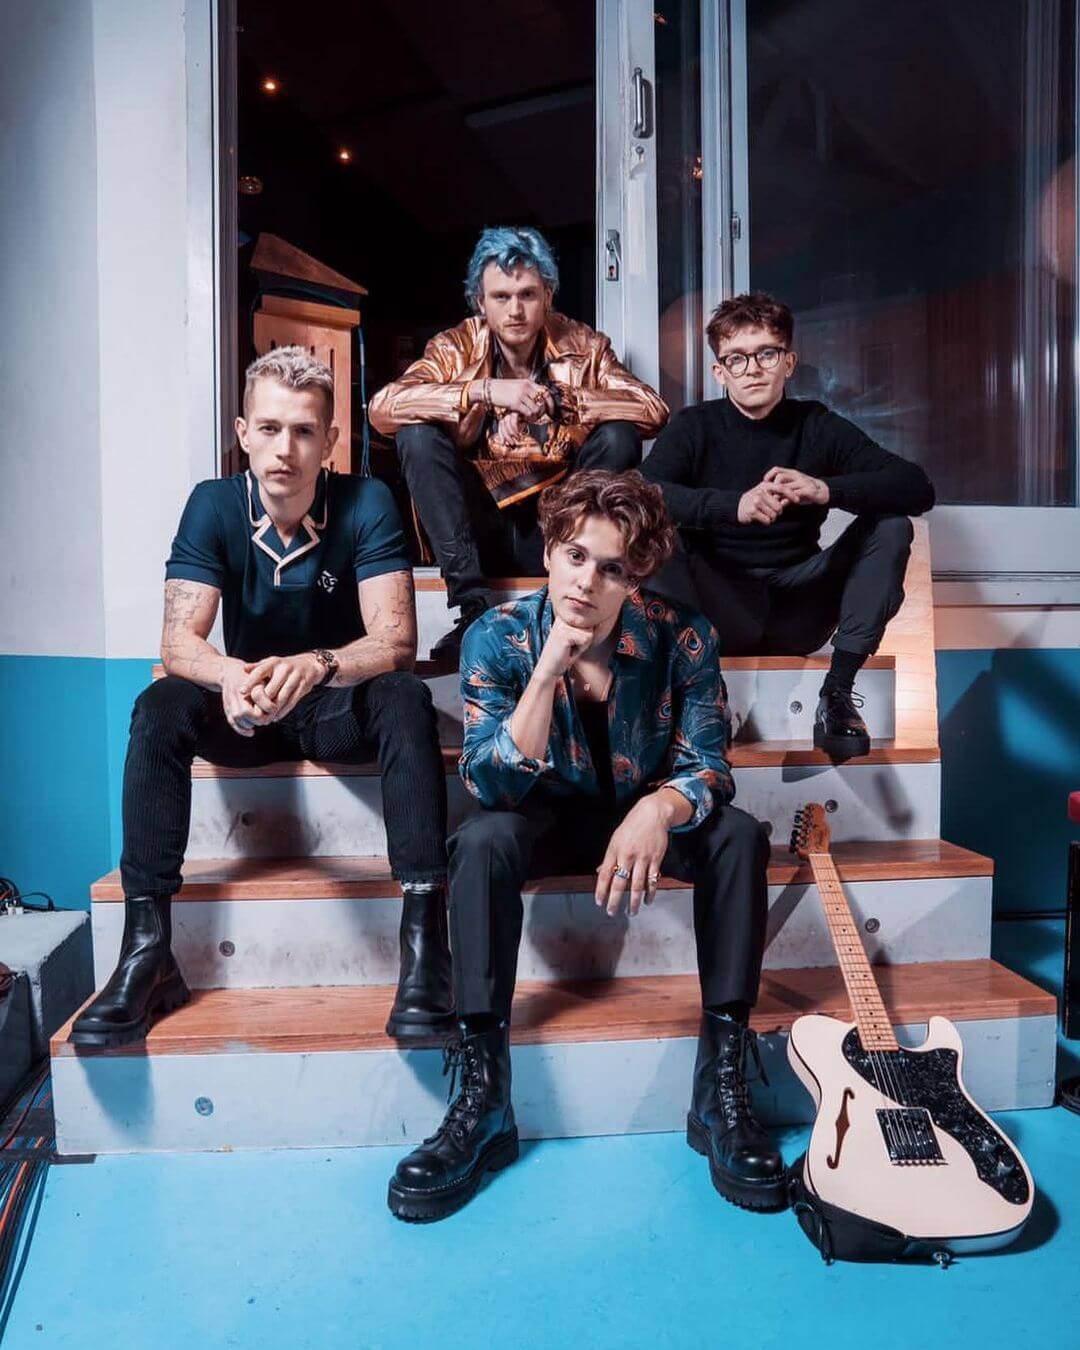 The Vamps band Photo by Dean Sherwood